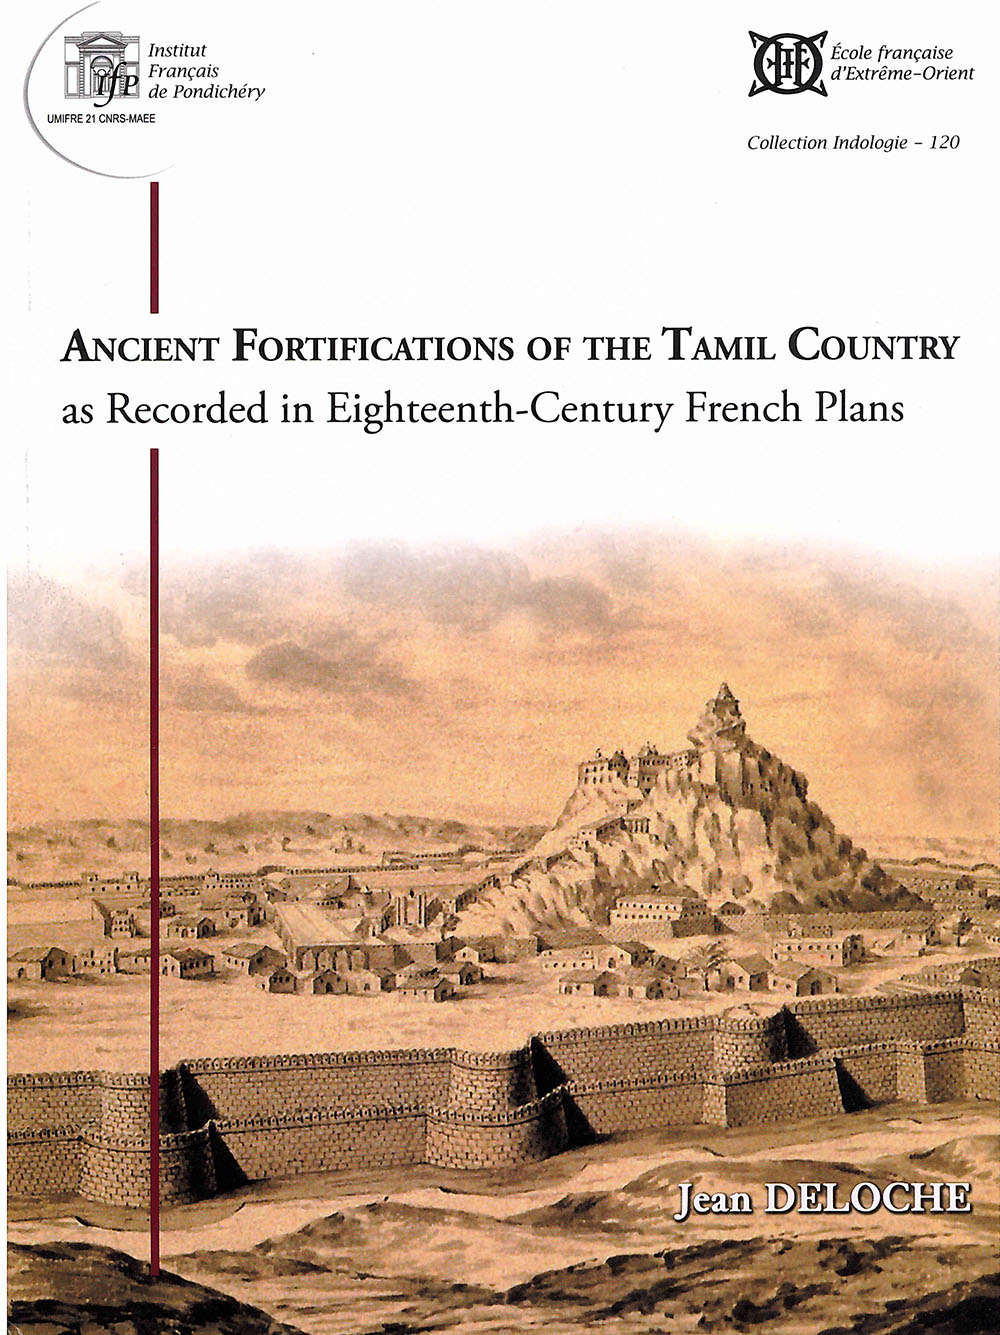 Ancient Fortifications in the Tamil Country as Recorded in Eighteenth-Century French Plans